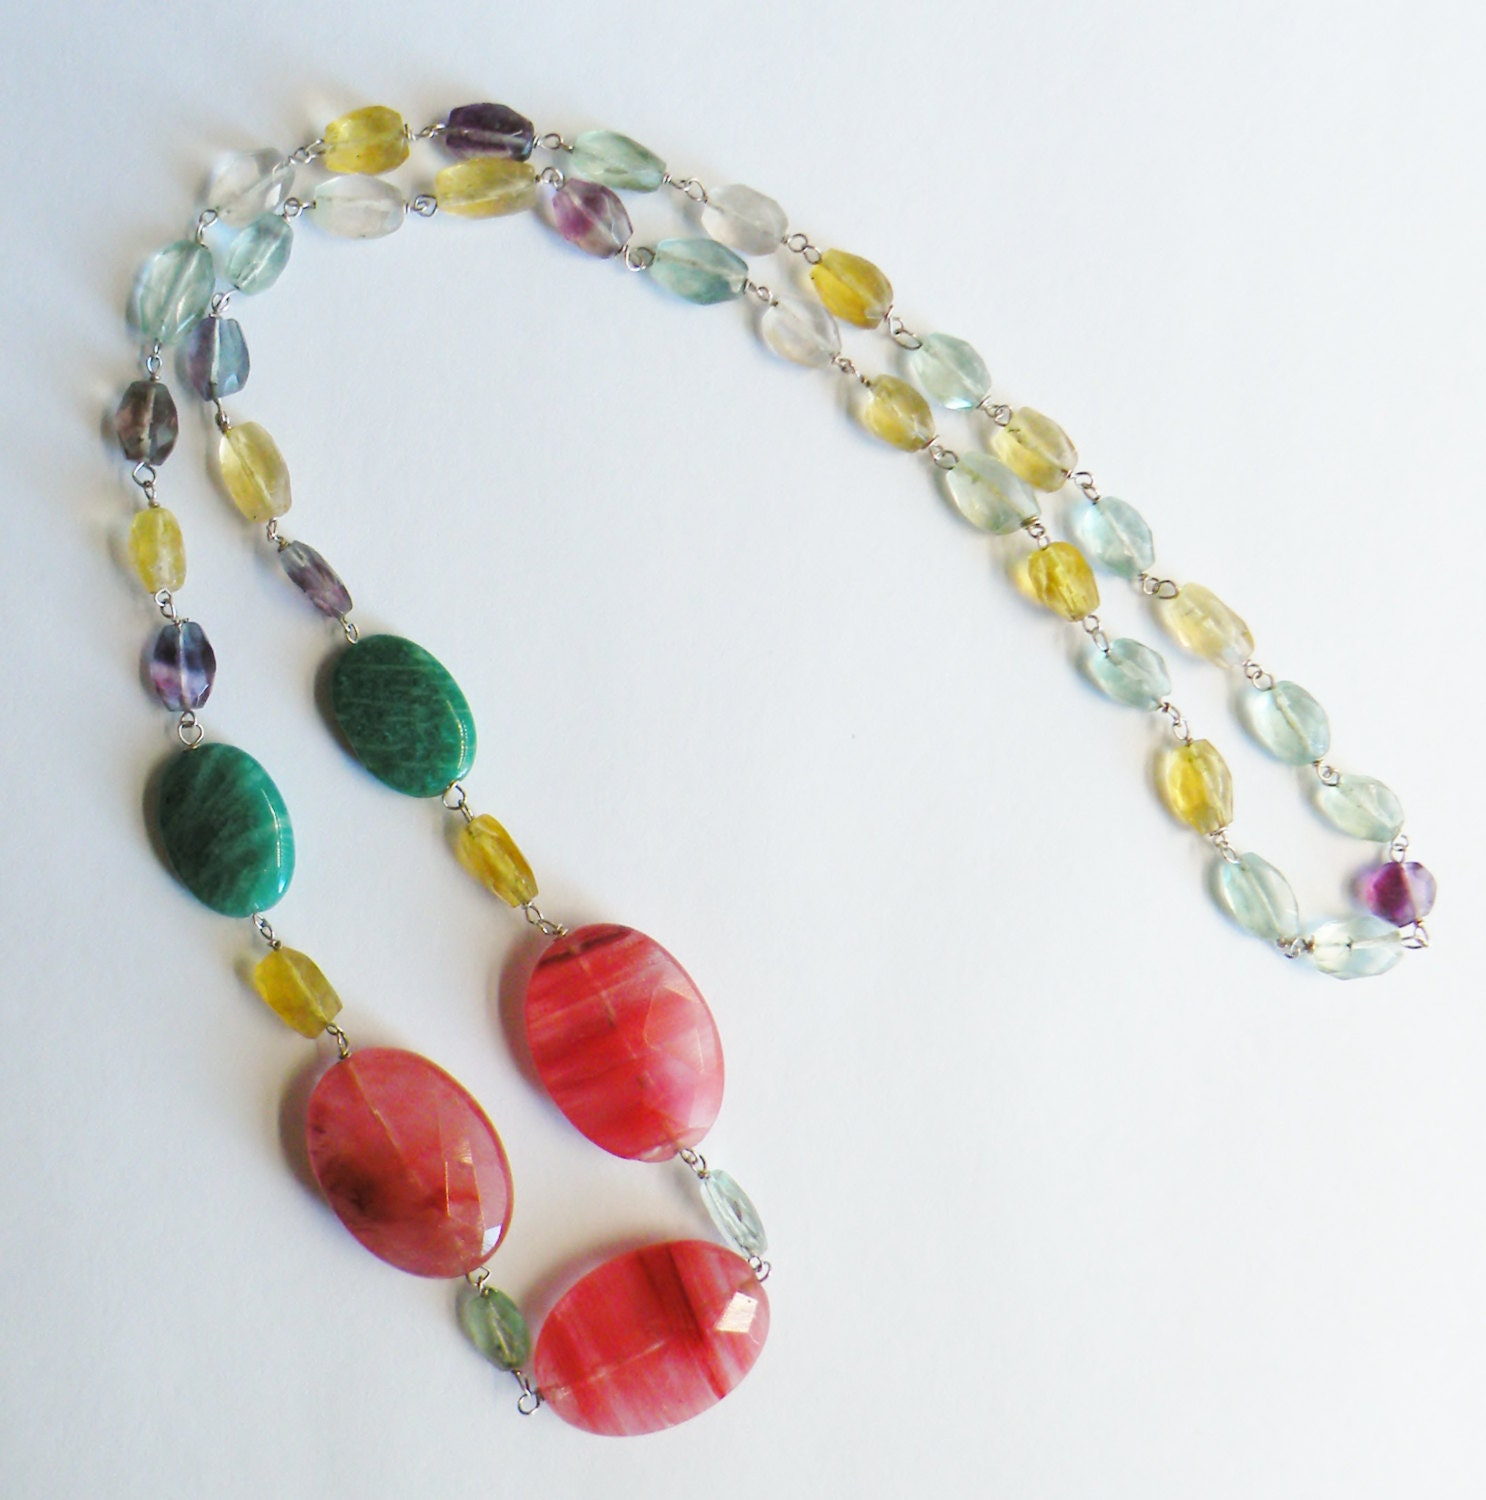 Gemstone Necklace -  Cherry quartz, Amazonite and Fluorite Sterling Silver Handmade Beaded Necklace - Multicolor